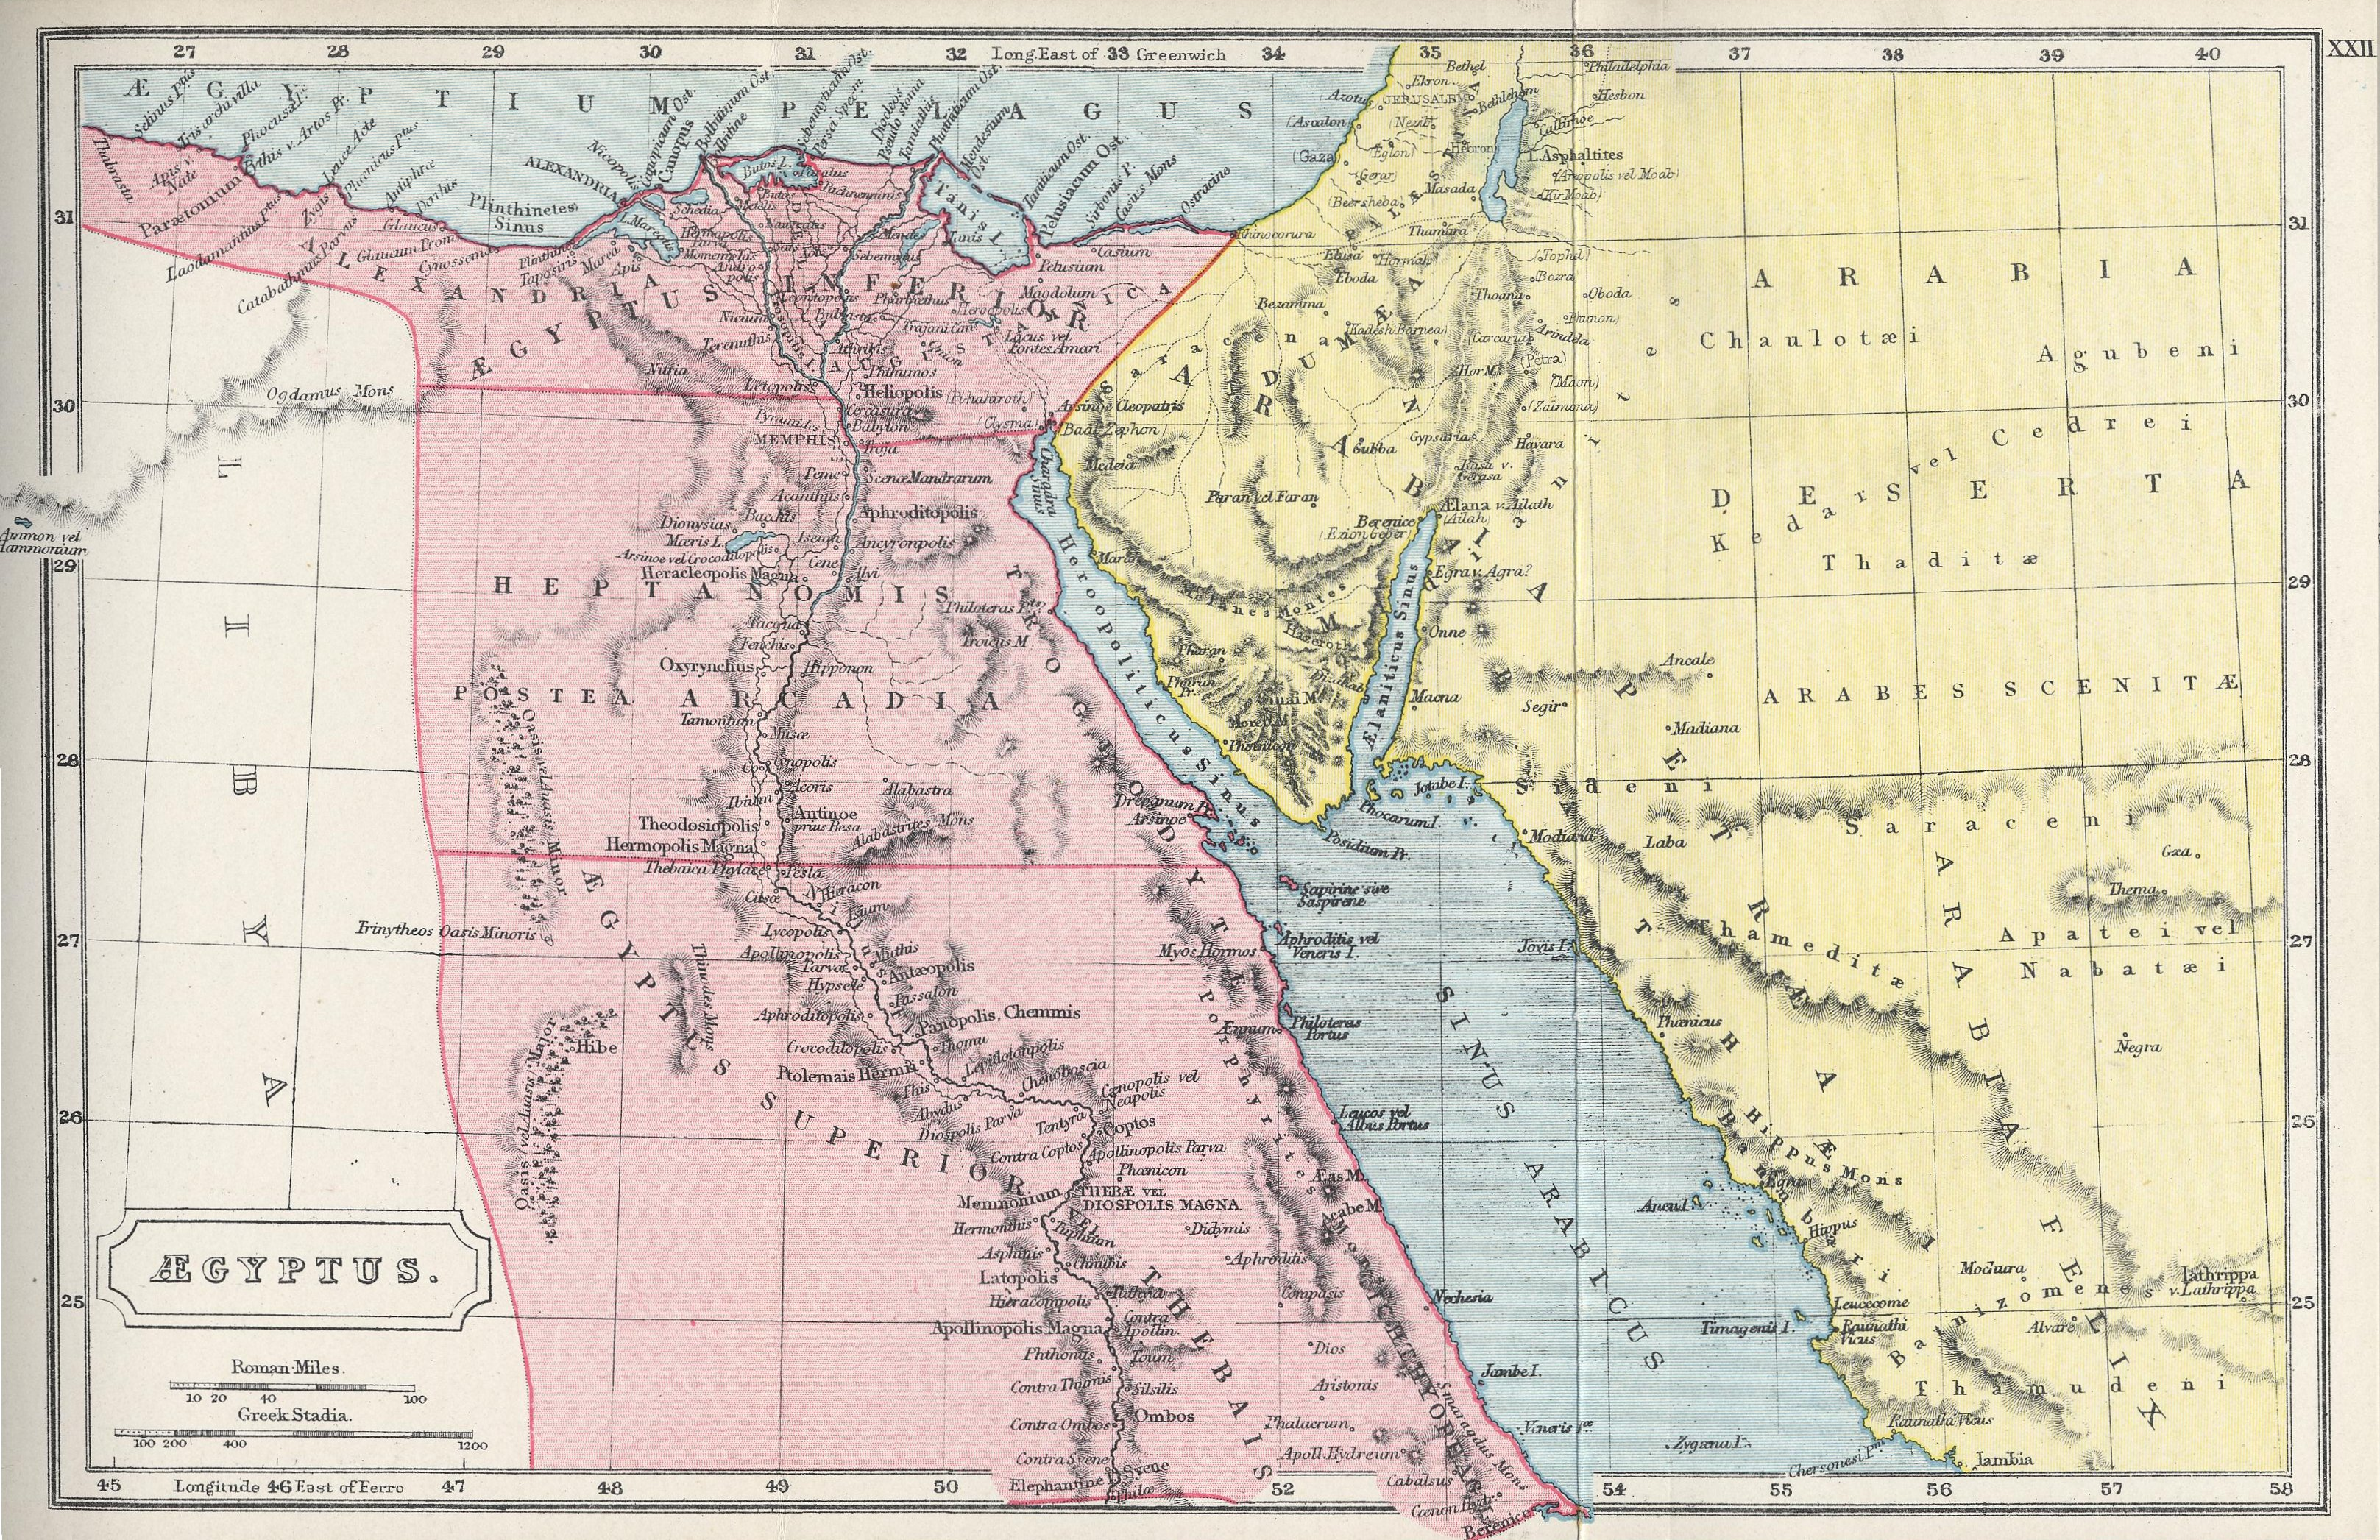 Map of Egypt70 BC - AD 180